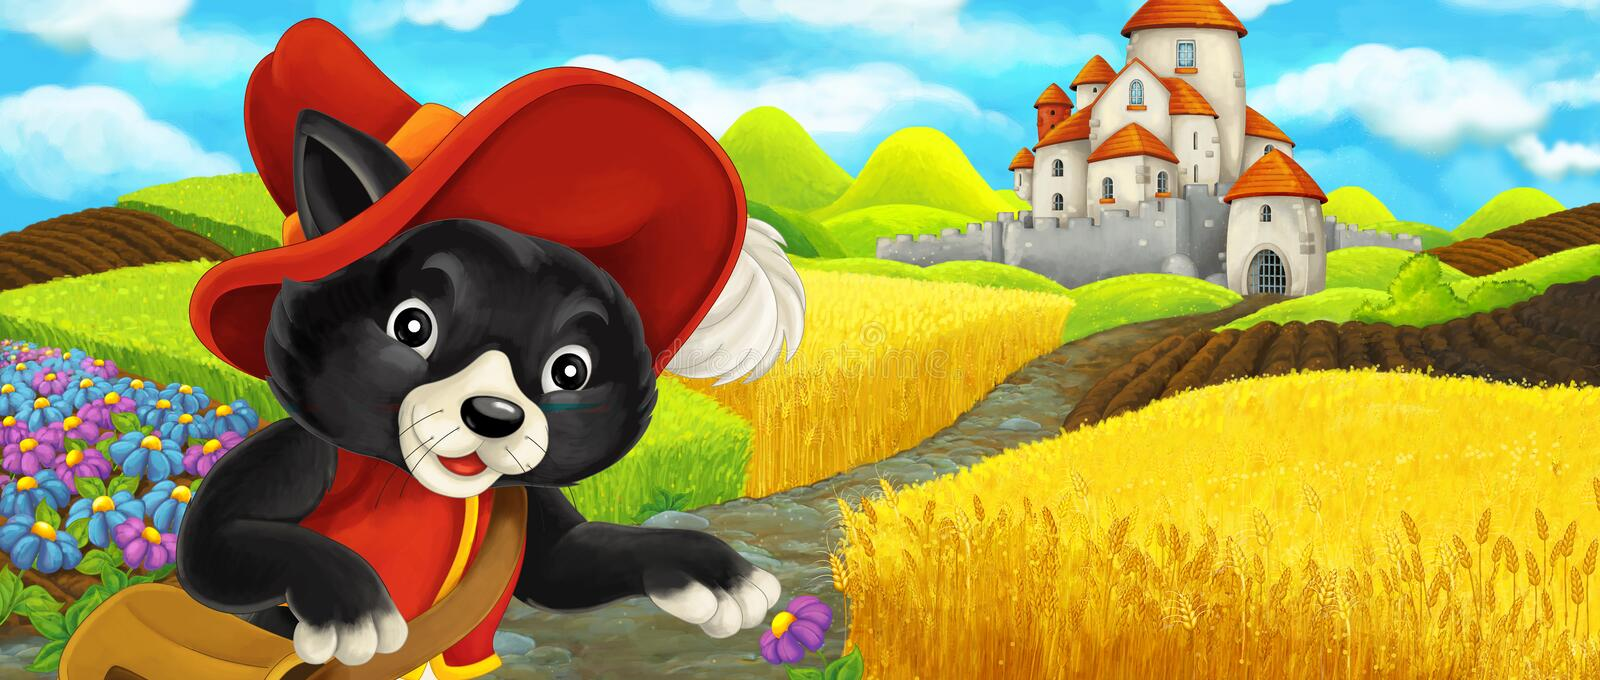 Cartoon scene - cat traveling to the castle on the hill near the farm ranch royalty free illustration